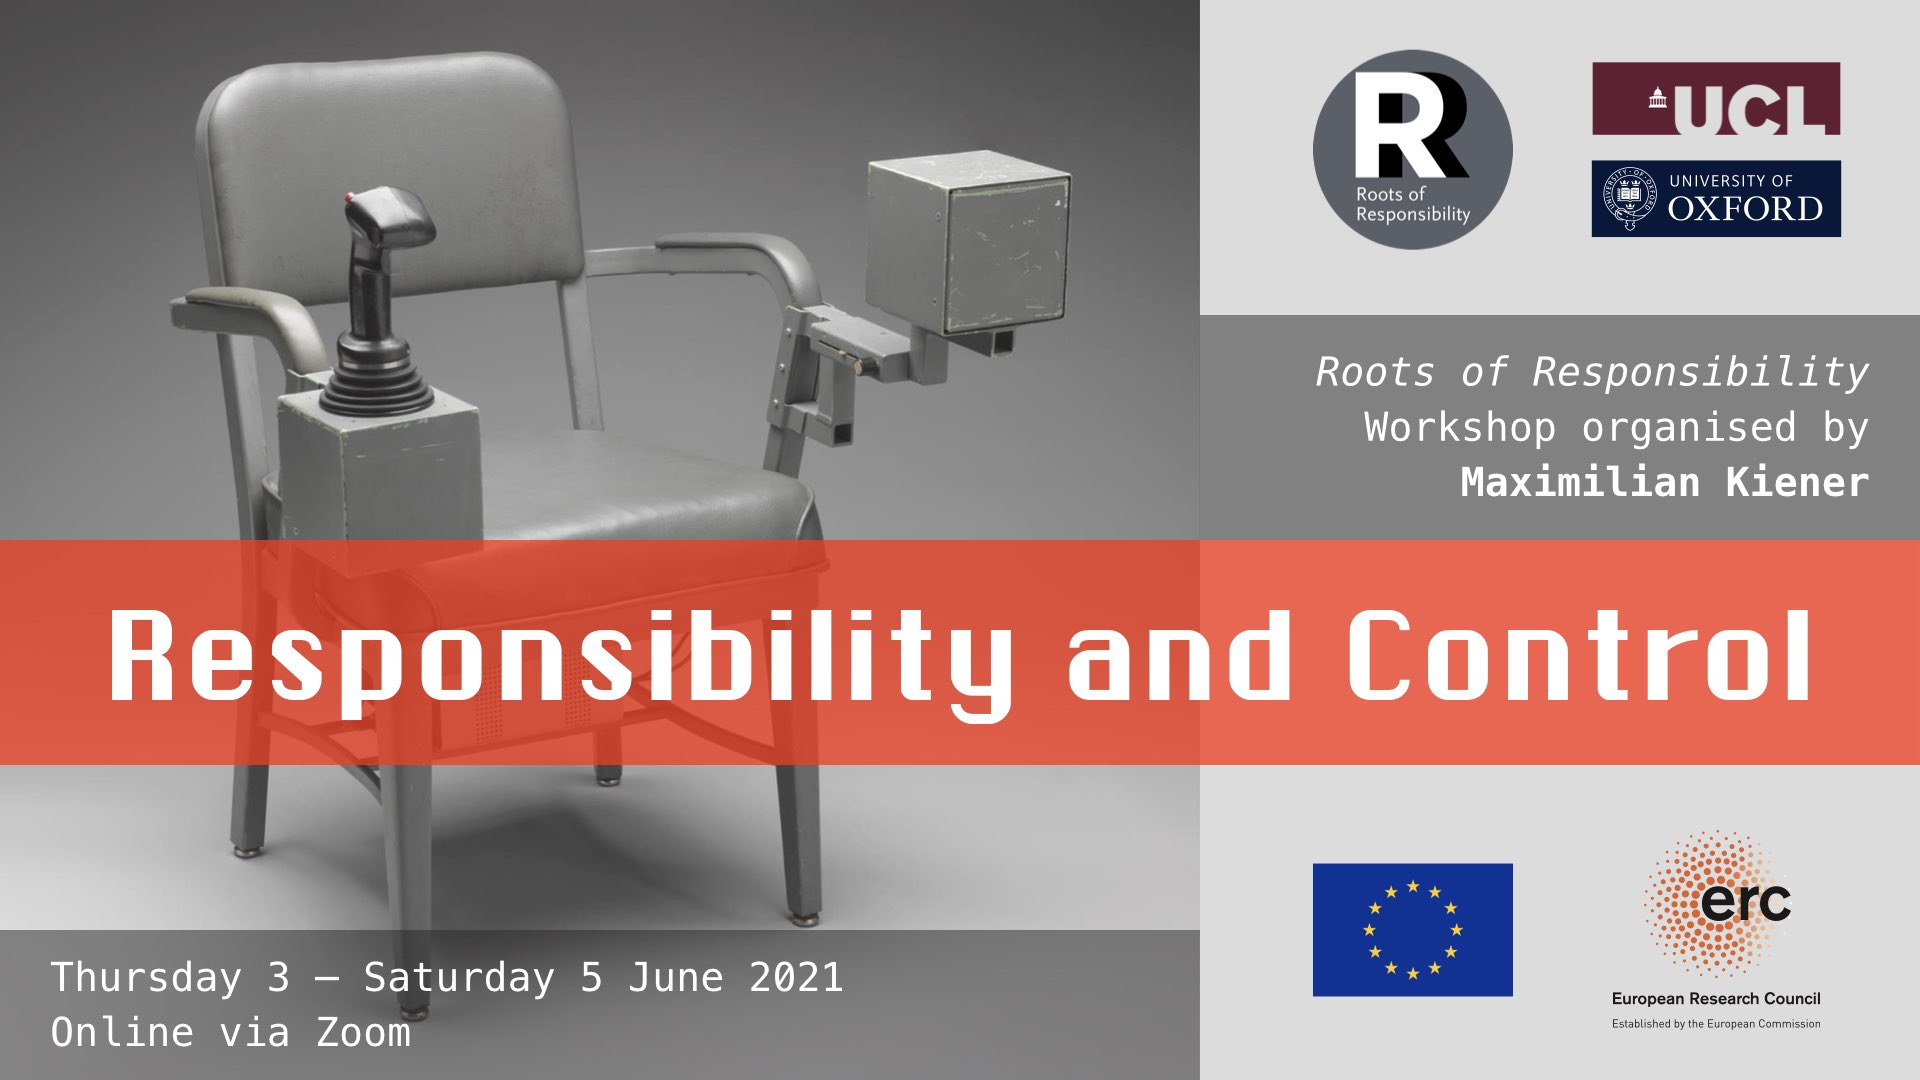 Max Kiener's RoR Research WS – Responsibility and Control